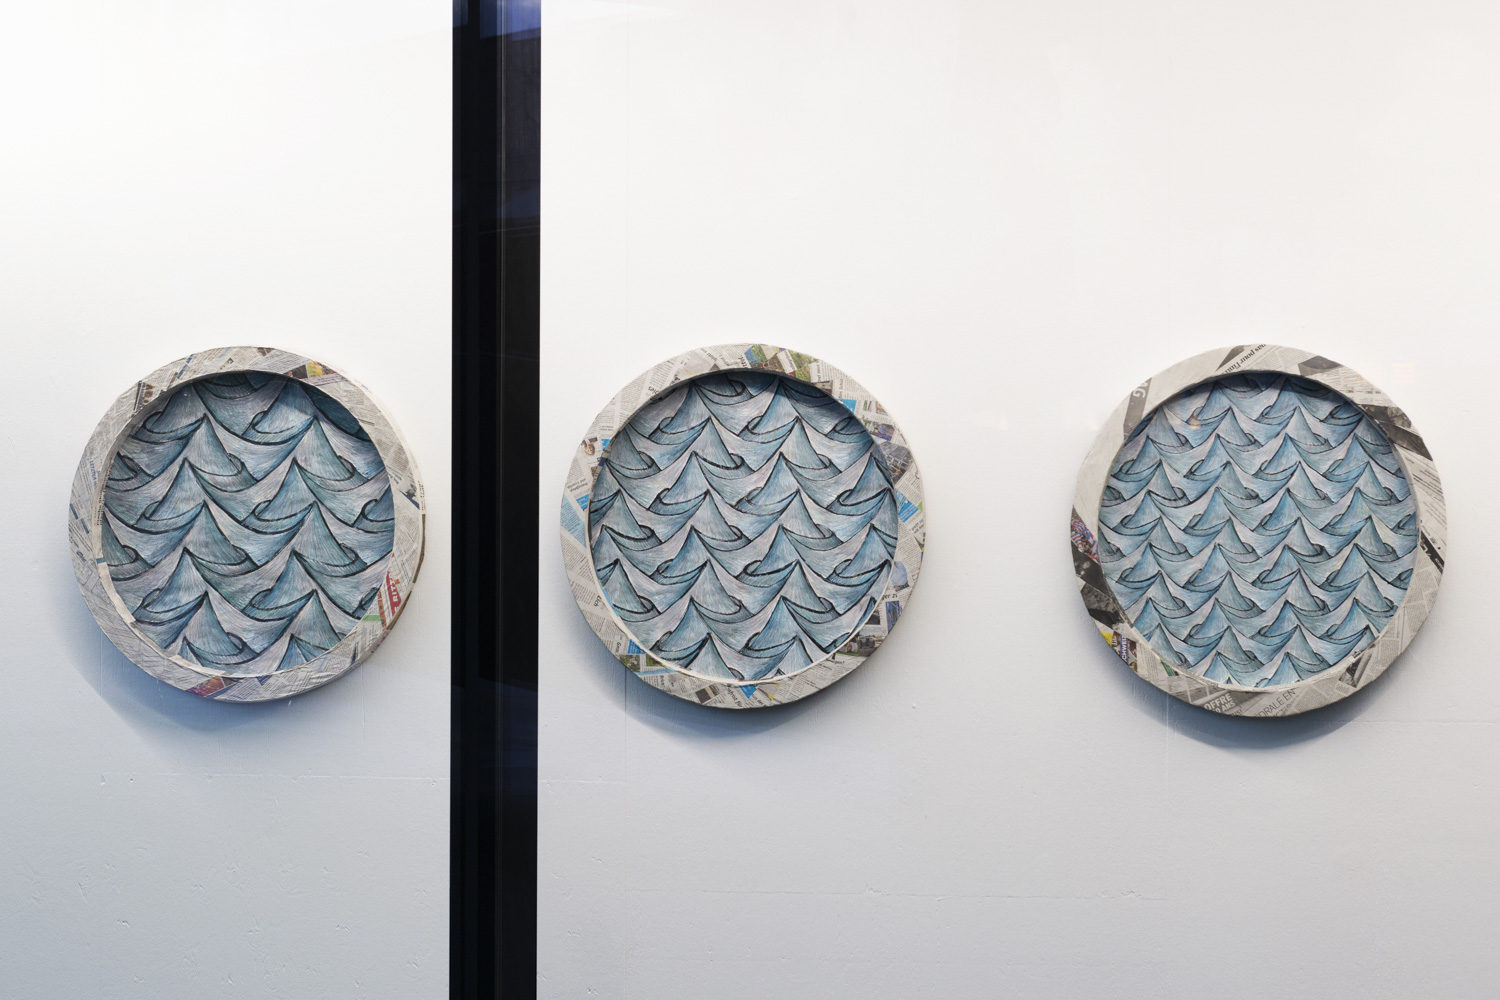 Sam Porritt, A Matter of Perspective (Triptych), 2018. Brush, ink and wax crayon on paper. Card, plaster, papier-mâché. 82 cm (diameter) x 7.5 cm each. Photographer Nici Jost.